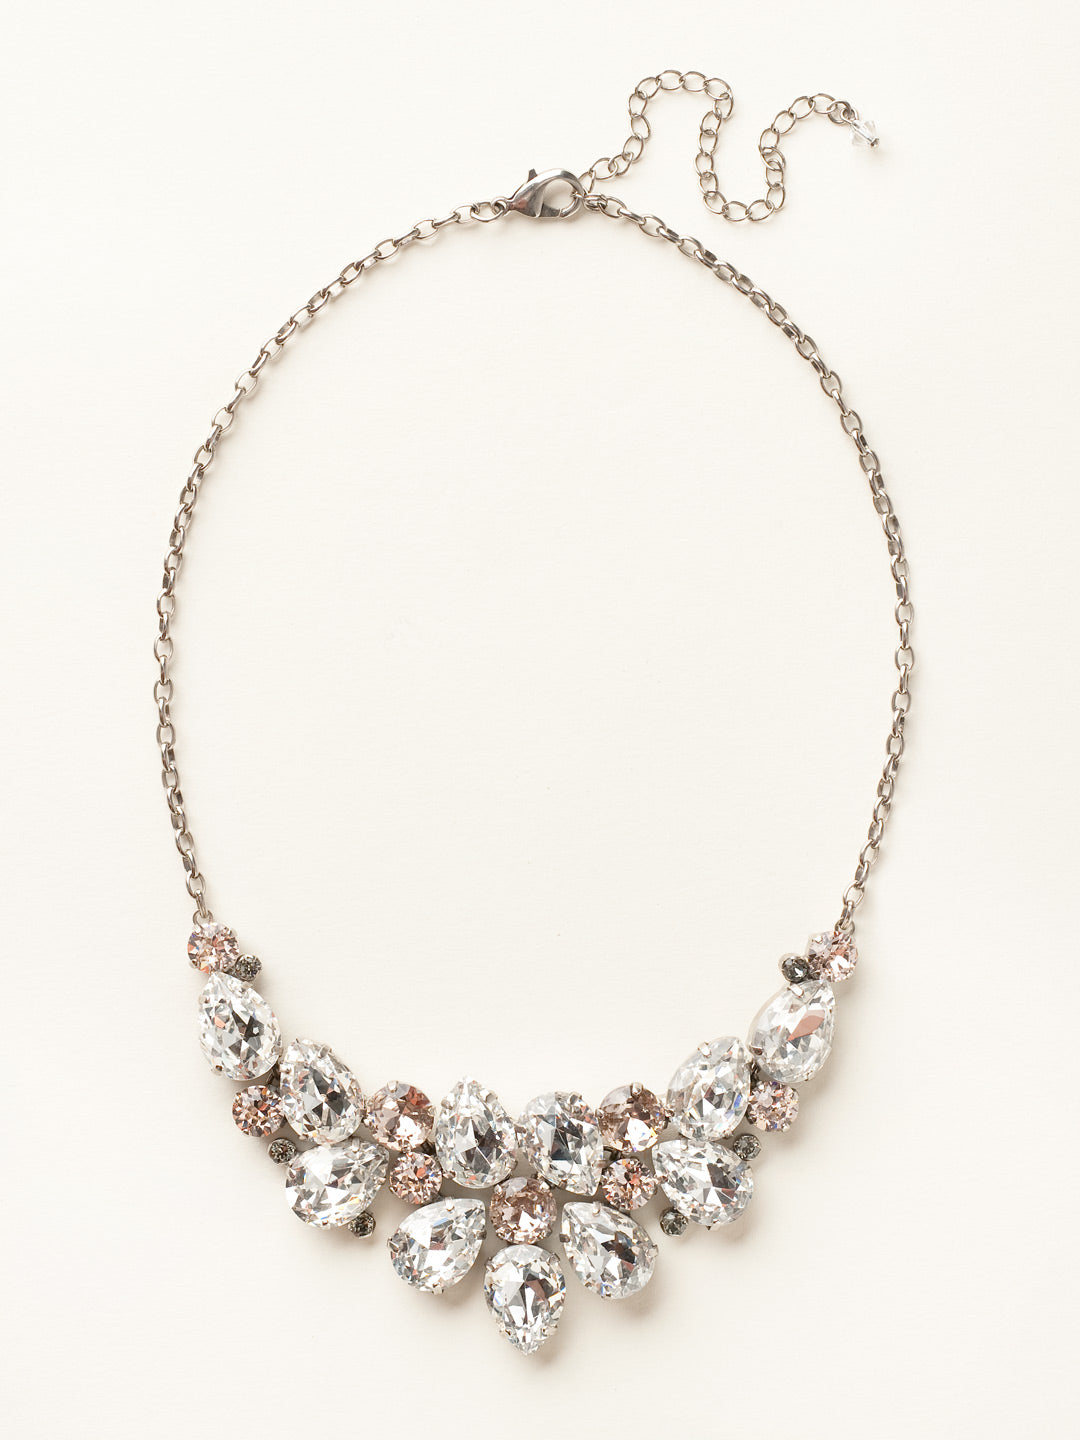 Dare To Pear Crystal Bib Necklace - NCP3ASSNB